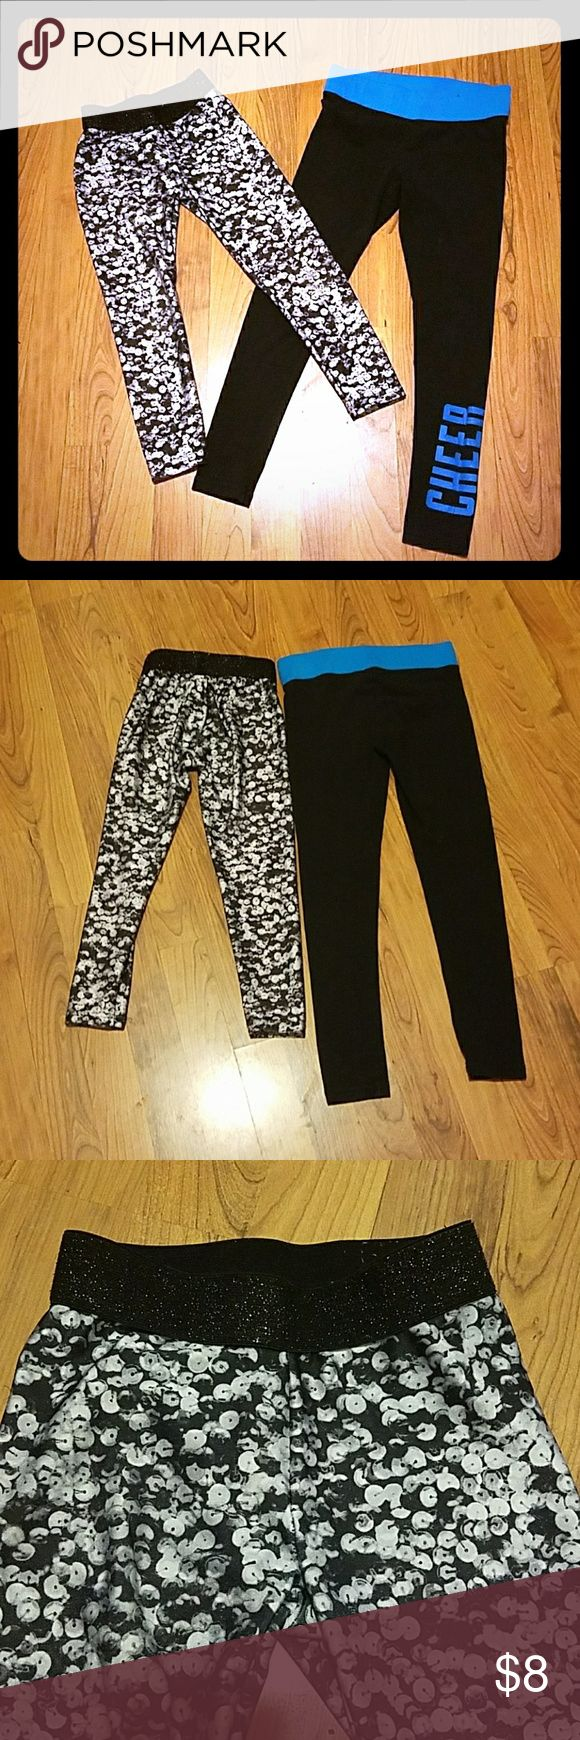 👽BUNDLE👽7 item bundle!!! Bundle of 2 Justice leggings and 5 shirts. 5 youth medium t-shirts.  All have minor wear and tear. Black and white pair of leggings has no holes I'm aware of, no stains and normal wear and tear.   The black and white pair of leggings is also capri cut. The black and blue cheer pair are lightly used.  The black is almost like new with nearly no fading.  These both have a lot of life left.  Perfect for school starting. Check out the other listing for 5 shirts to see…